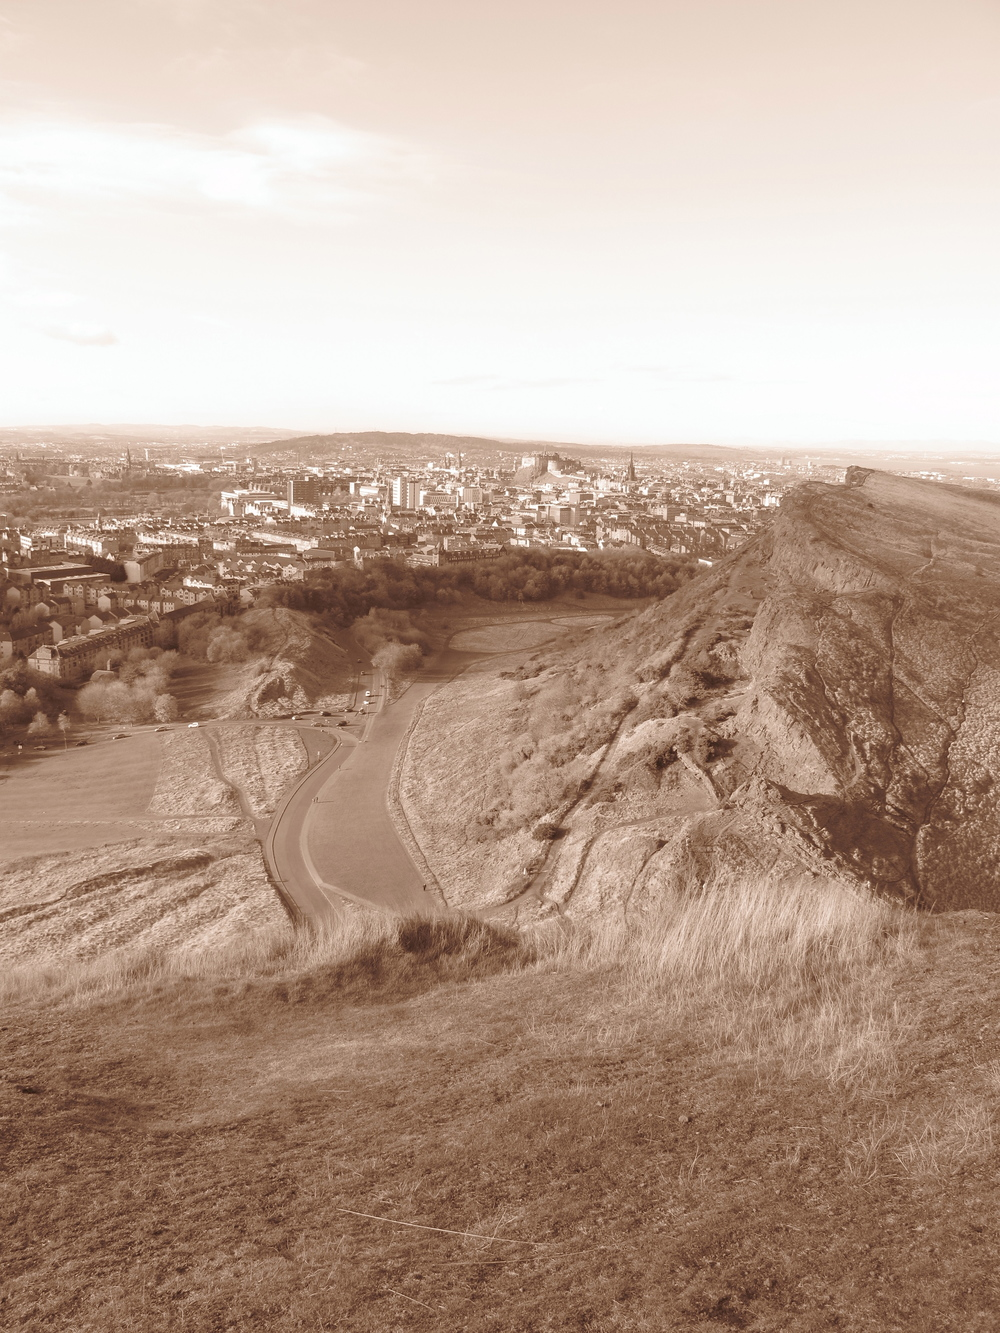 Holyrood Park cliffs and view of the city of Edinburgh - in sepia tones.